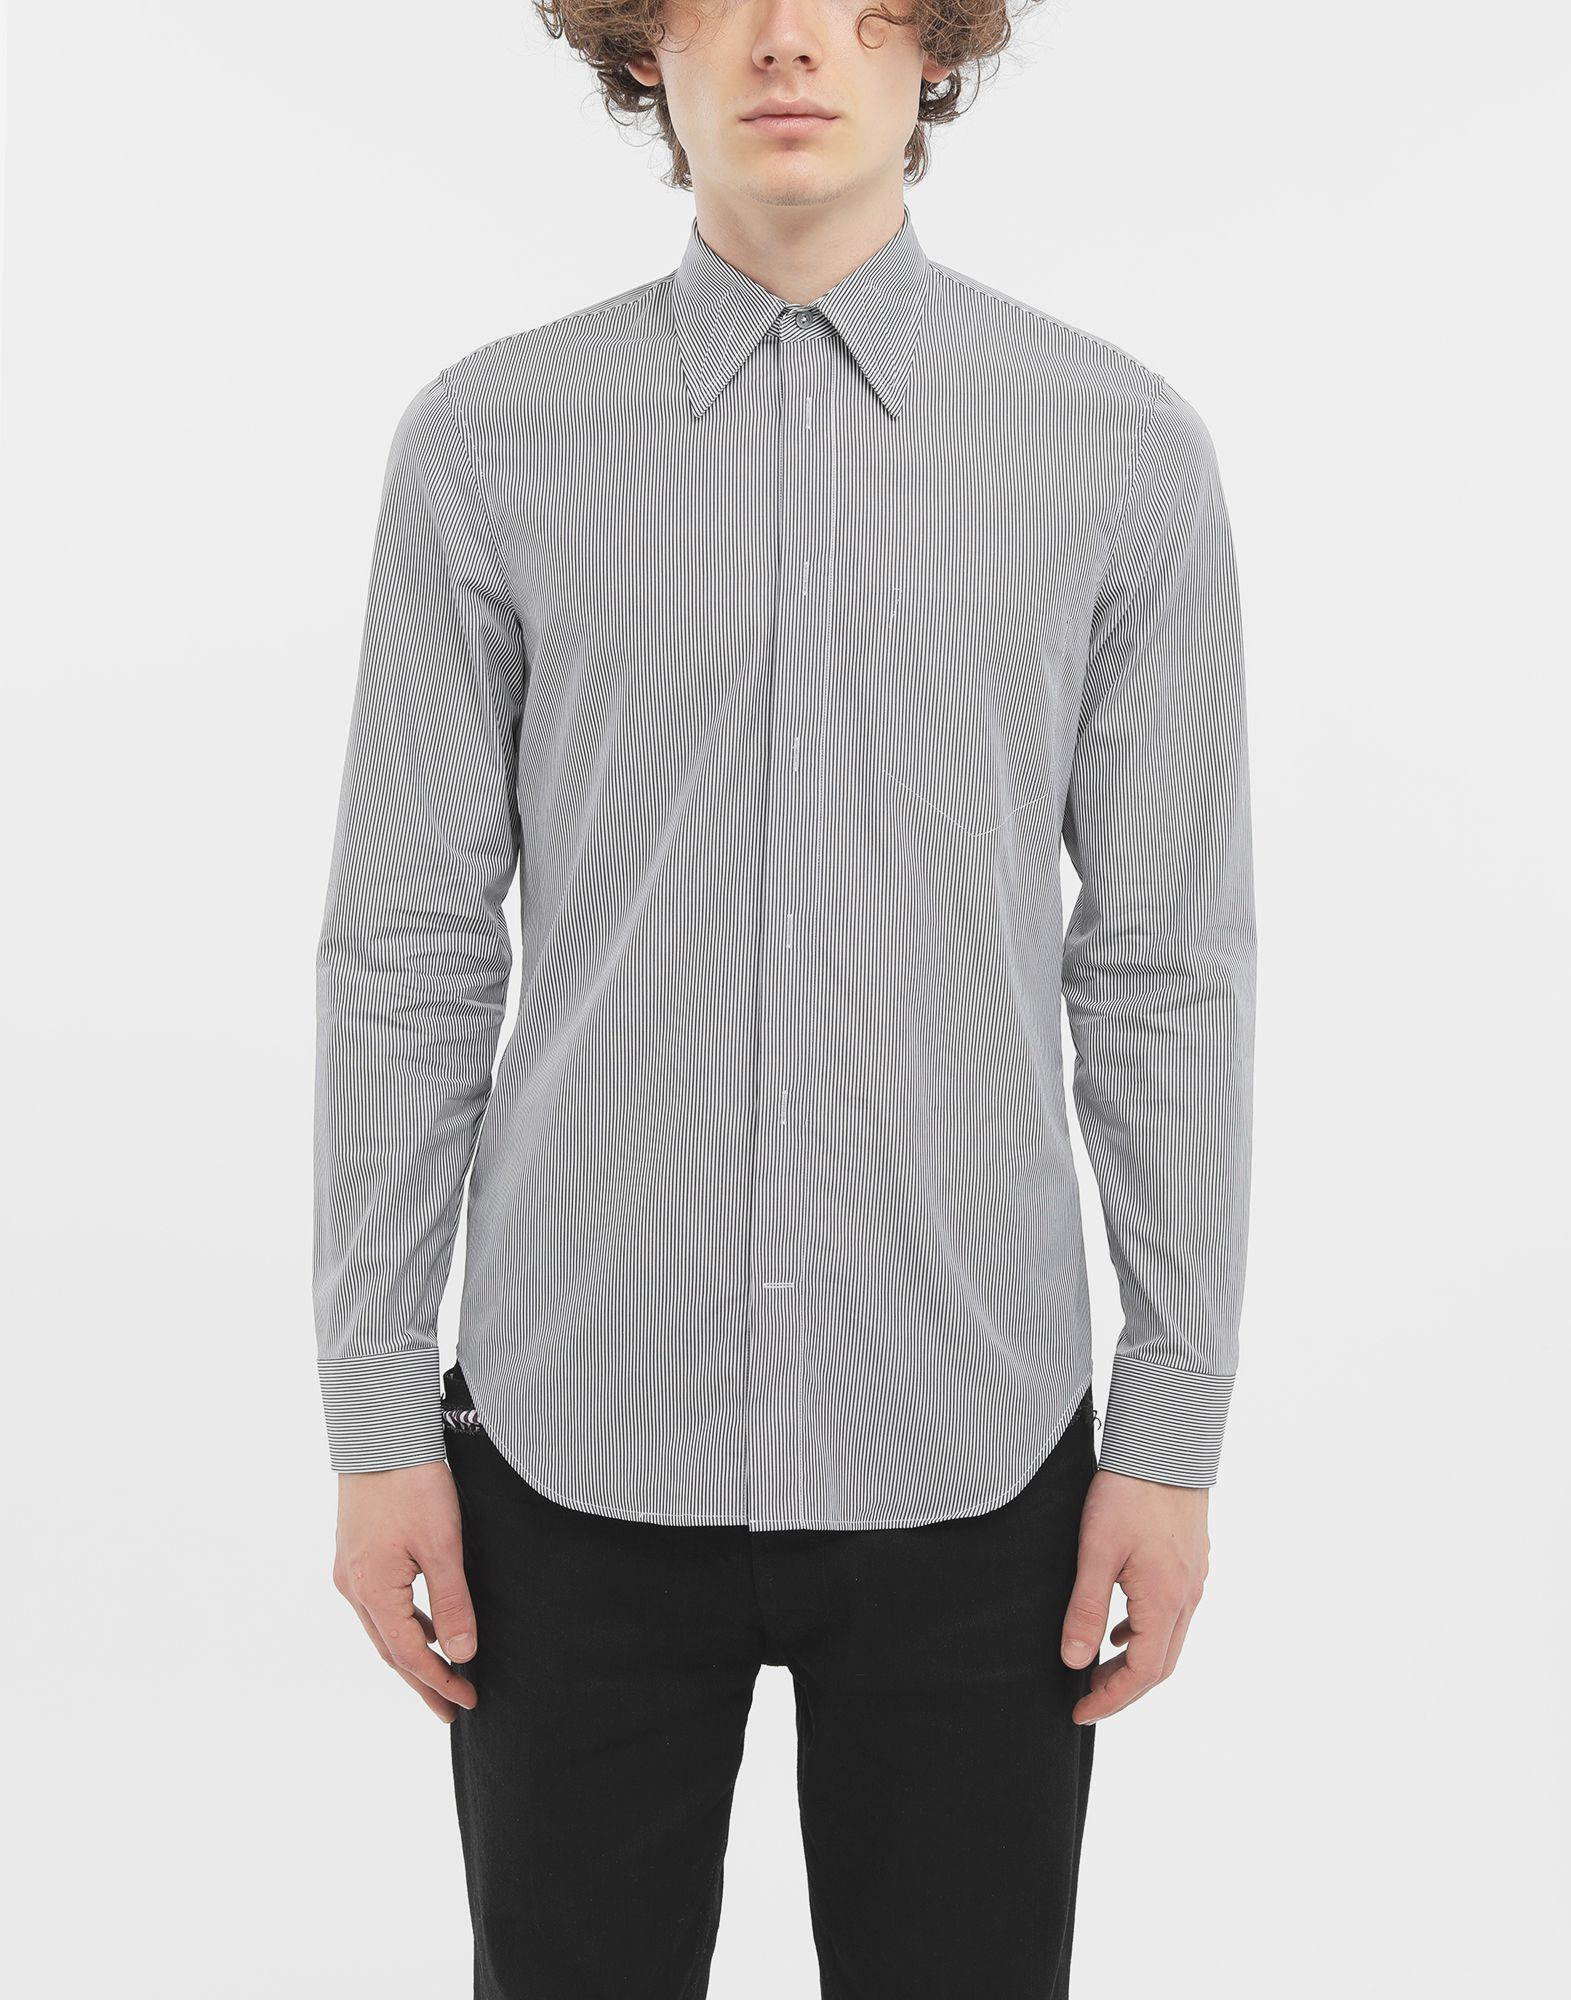 MAISON MARGIELA Outline pinstripe shirt Long sleeve shirt Man r